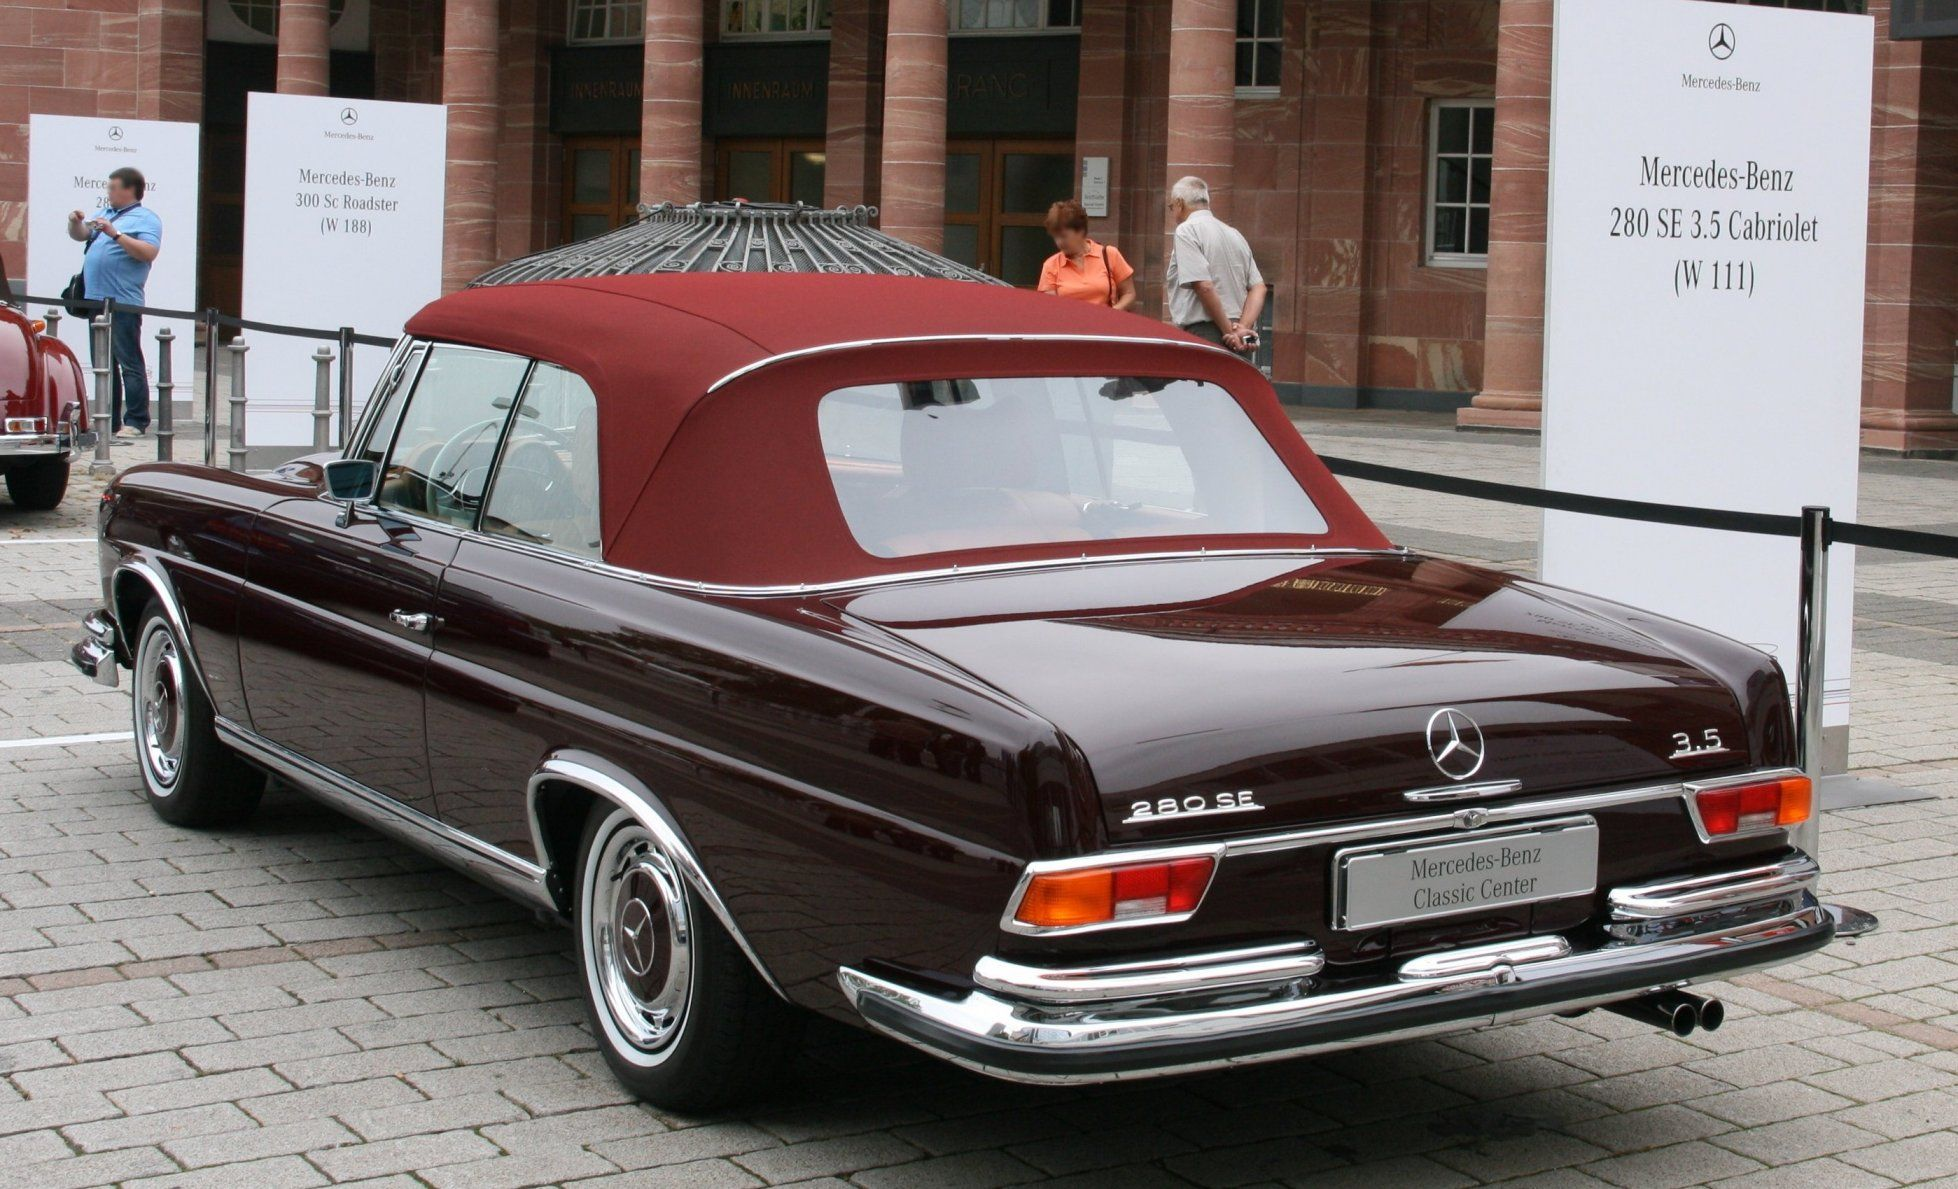 power cars mercedes benz 280 se 3 5 cabriolet w111. Black Bedroom Furniture Sets. Home Design Ideas